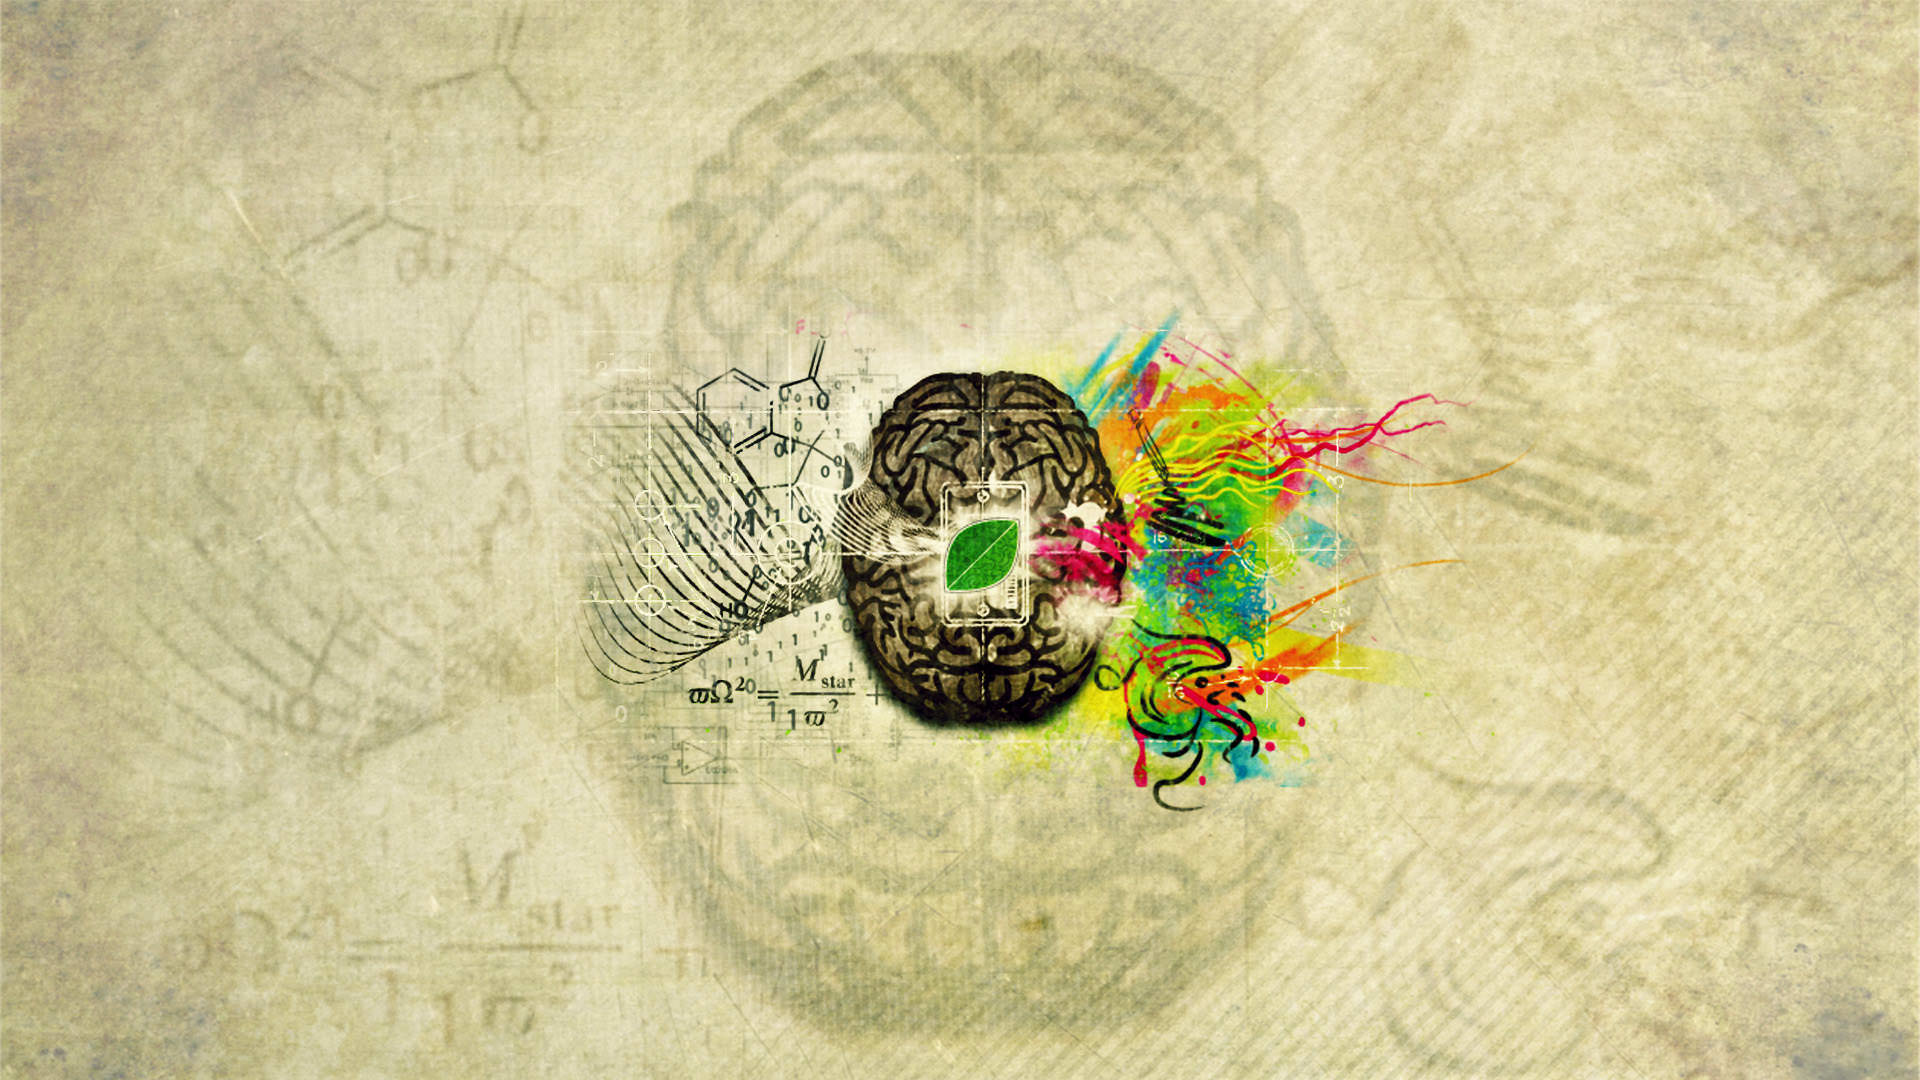 brain wallpaper - photo #15